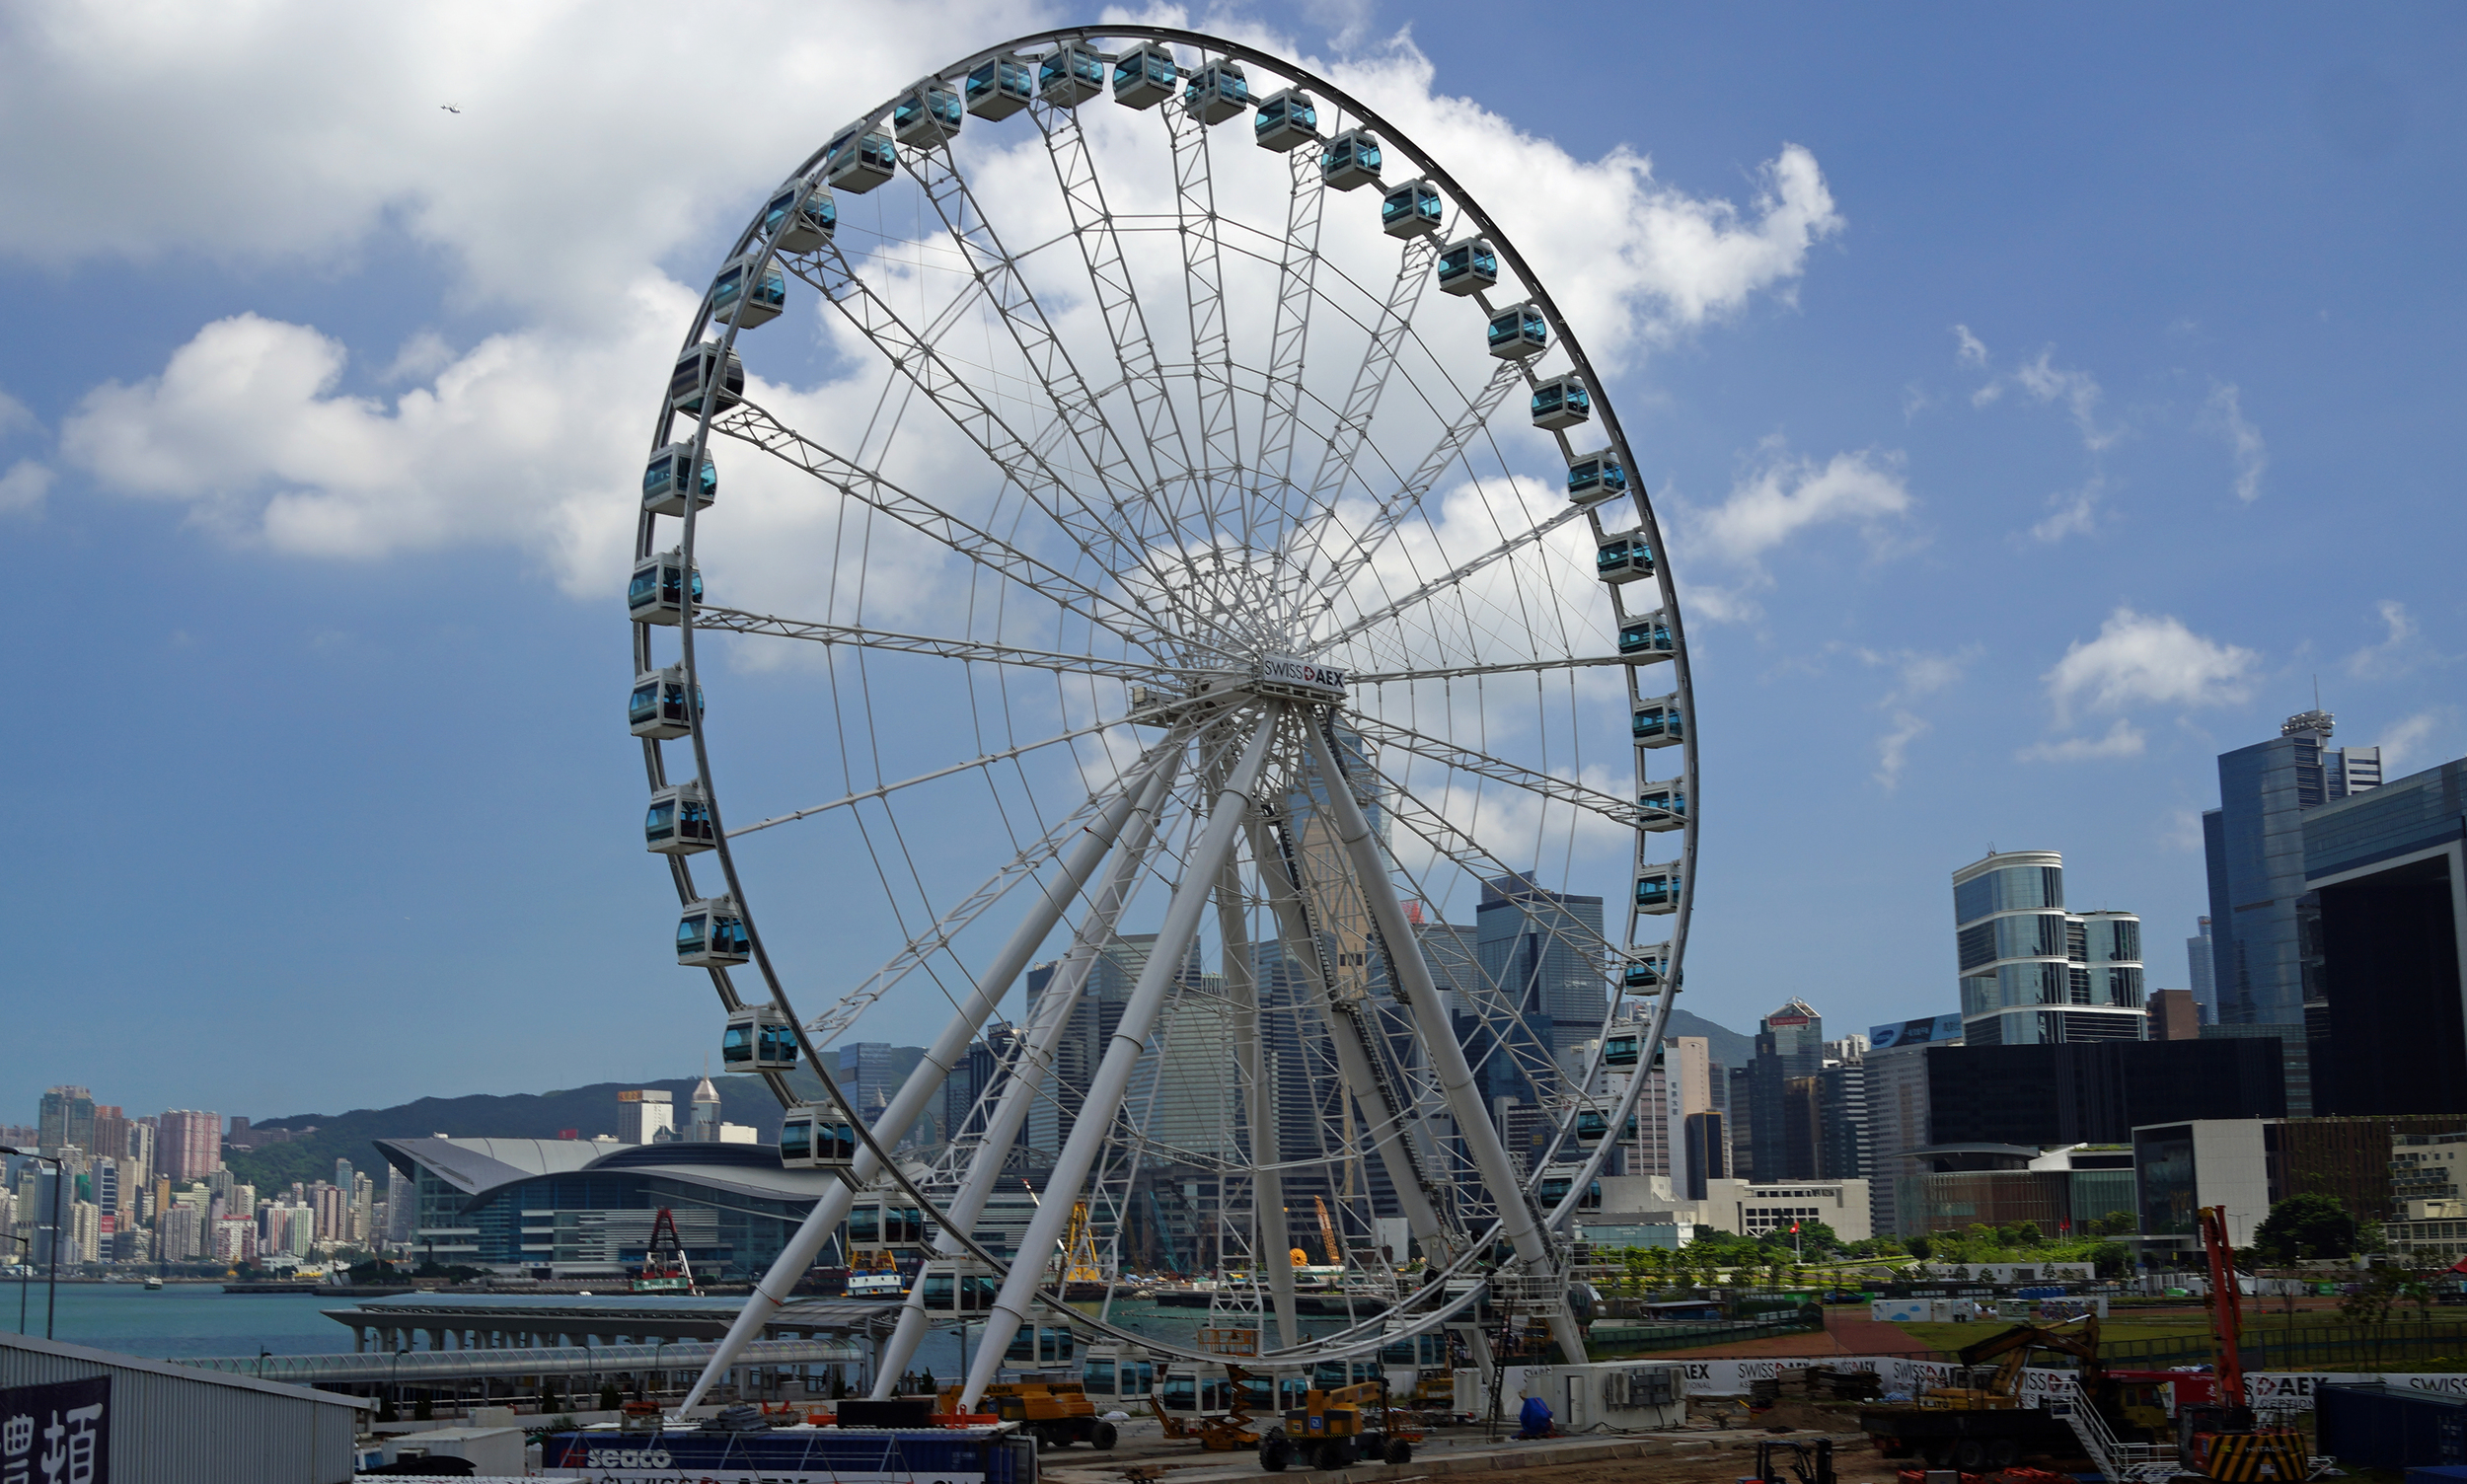 ....but at least it is finished. The Hong Kong Eye or Hong Kong Wheel